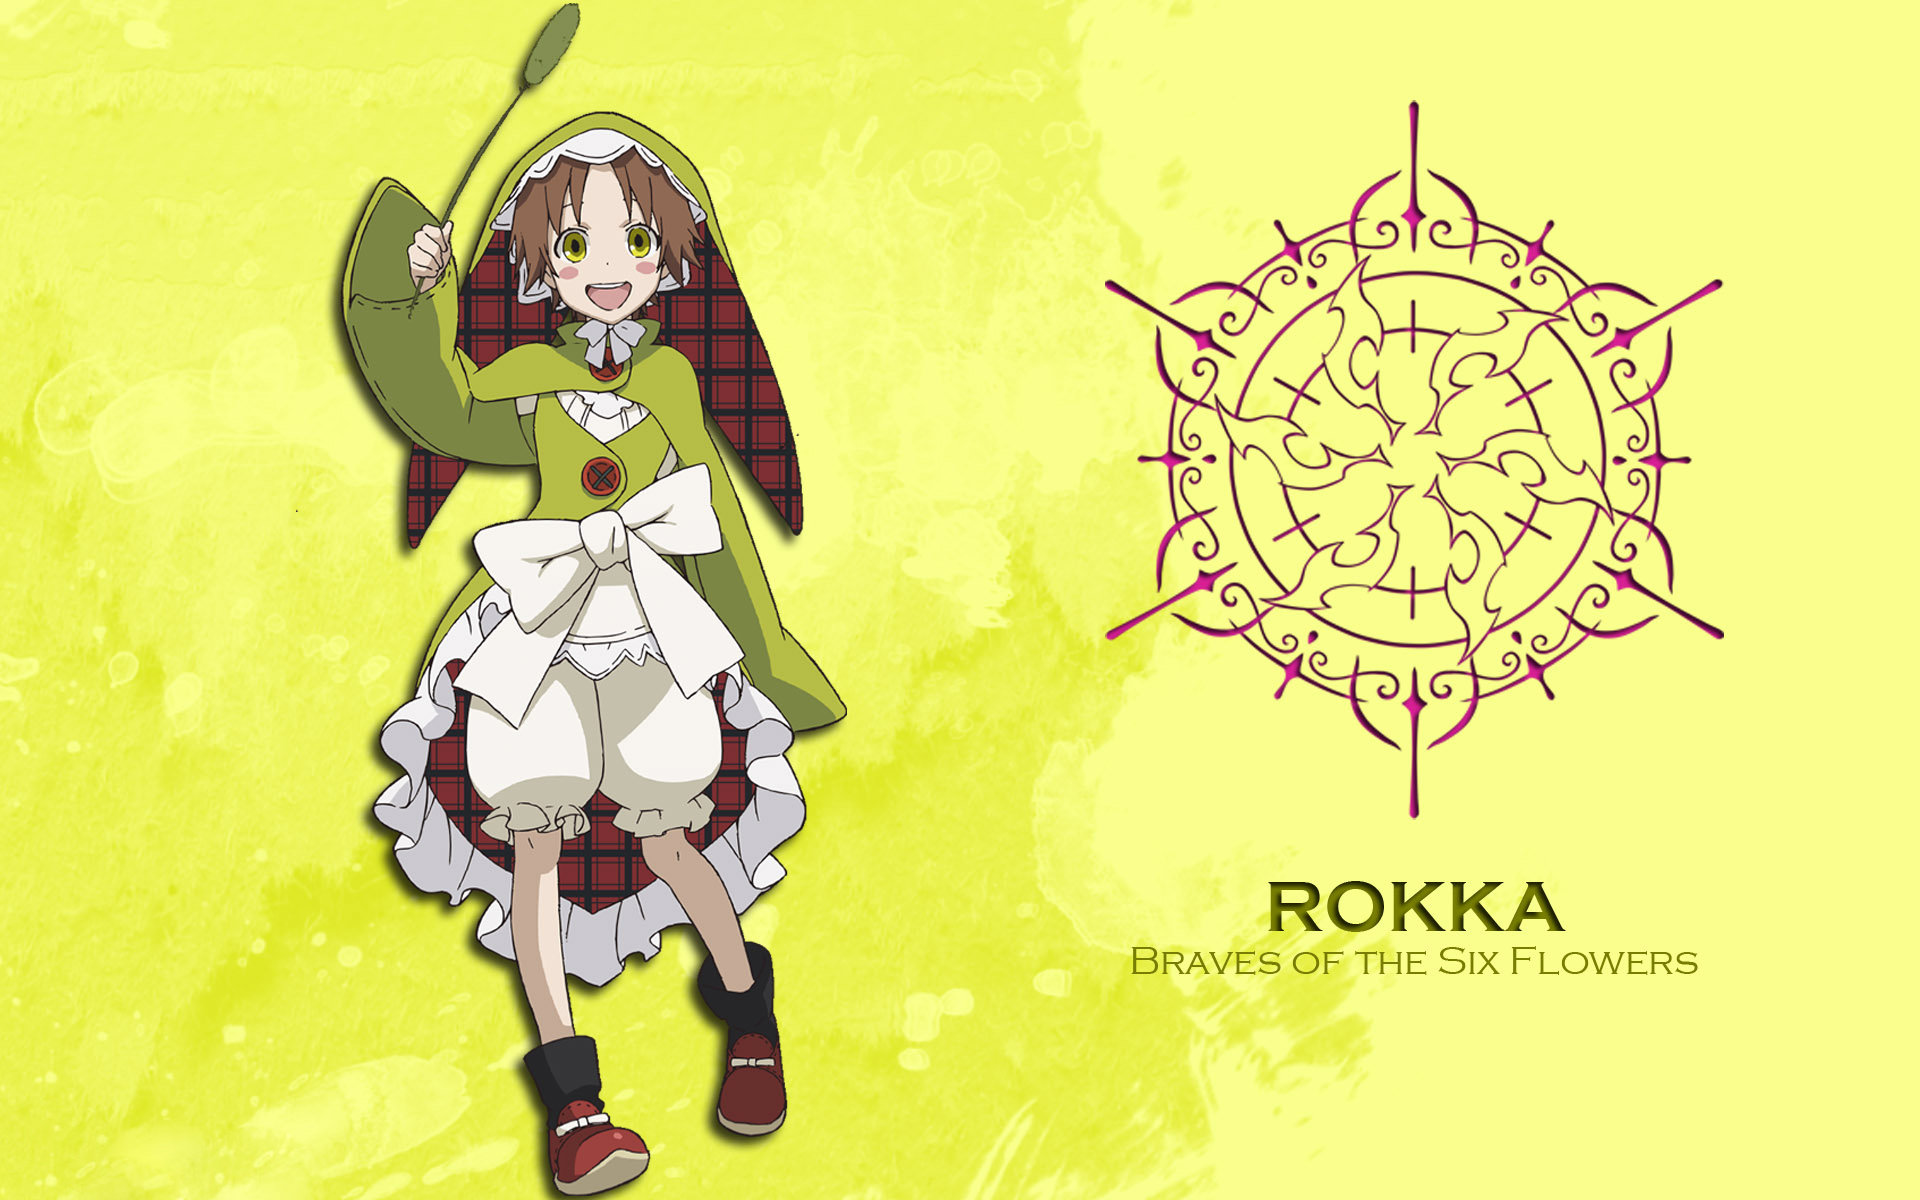 Download hd 1920x1200 Rokka: Braves Of The Six Flowers PC background ID:124239 for free